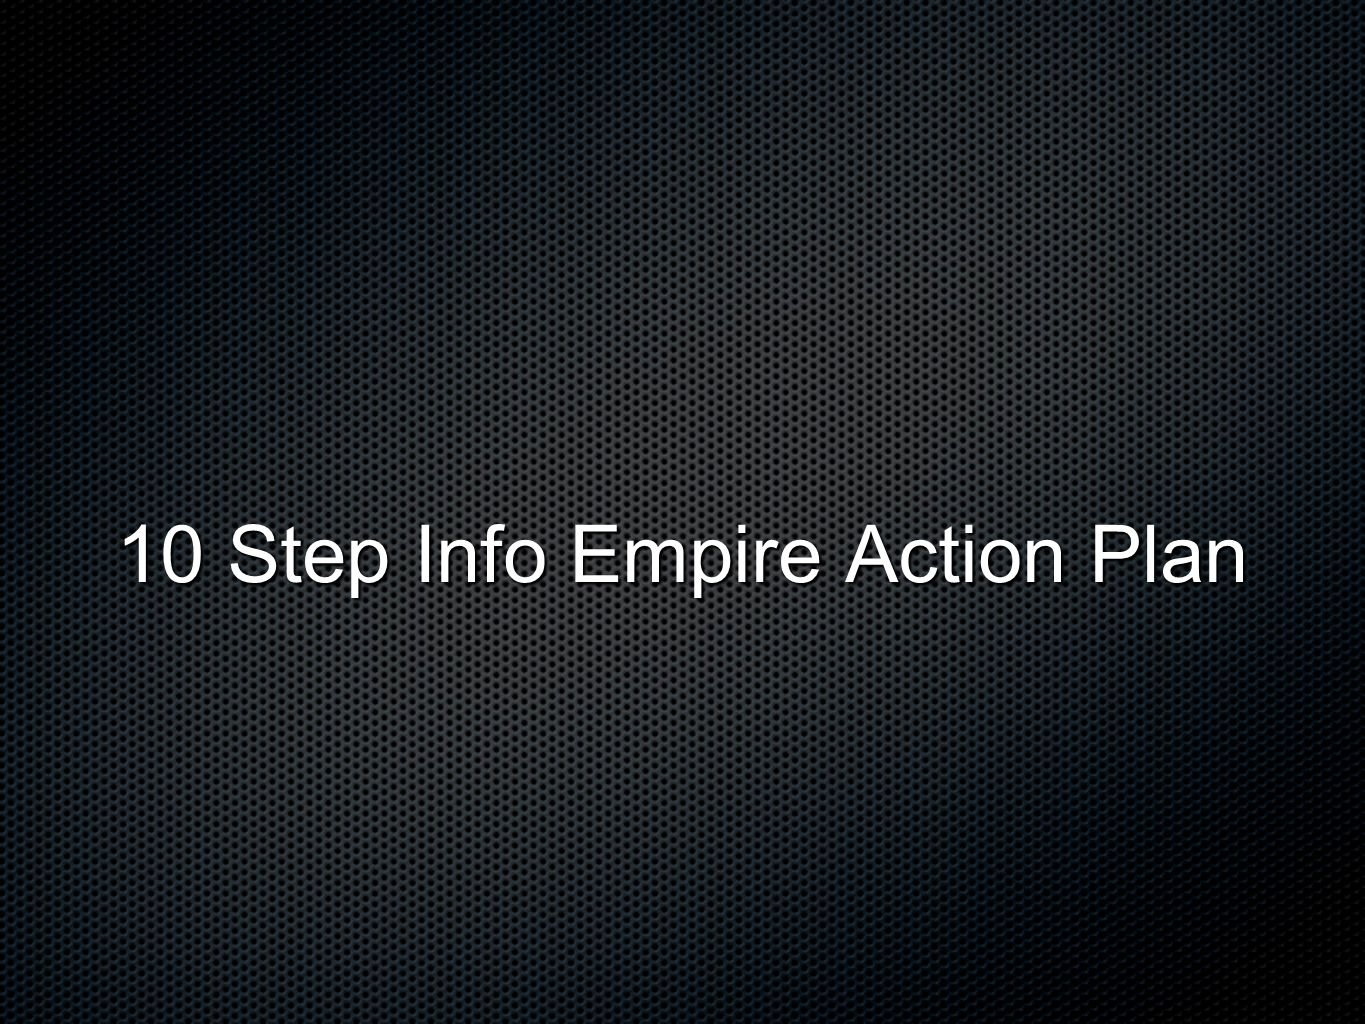 10 Step Info Empire Action Plan